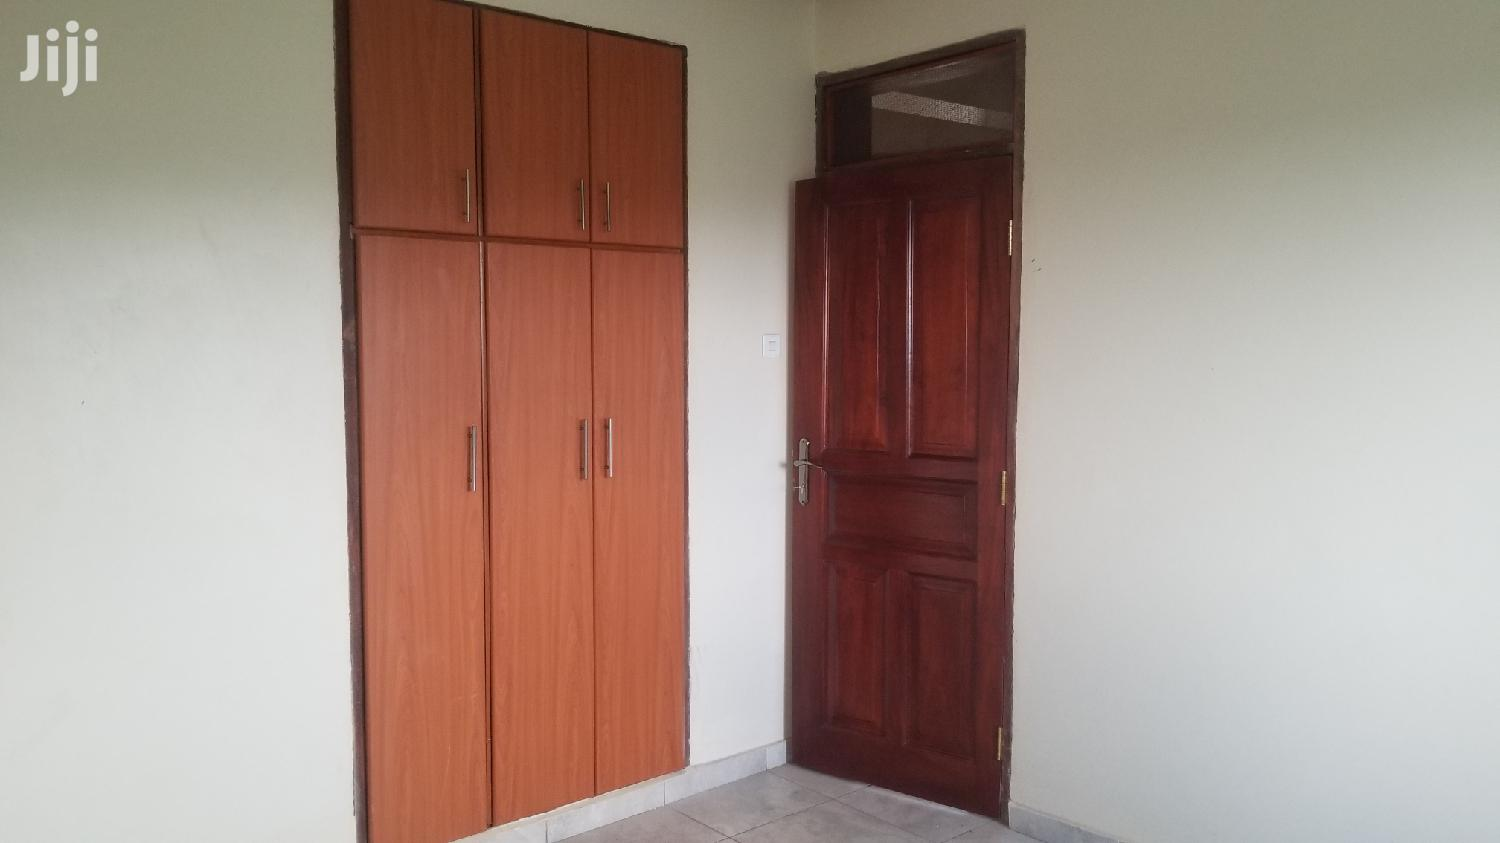 Kyaliwajjala Two Bedroom Two Bathroom House for Rent   Houses & Apartments For Rent for sale in Wakiso, Central Region, Uganda